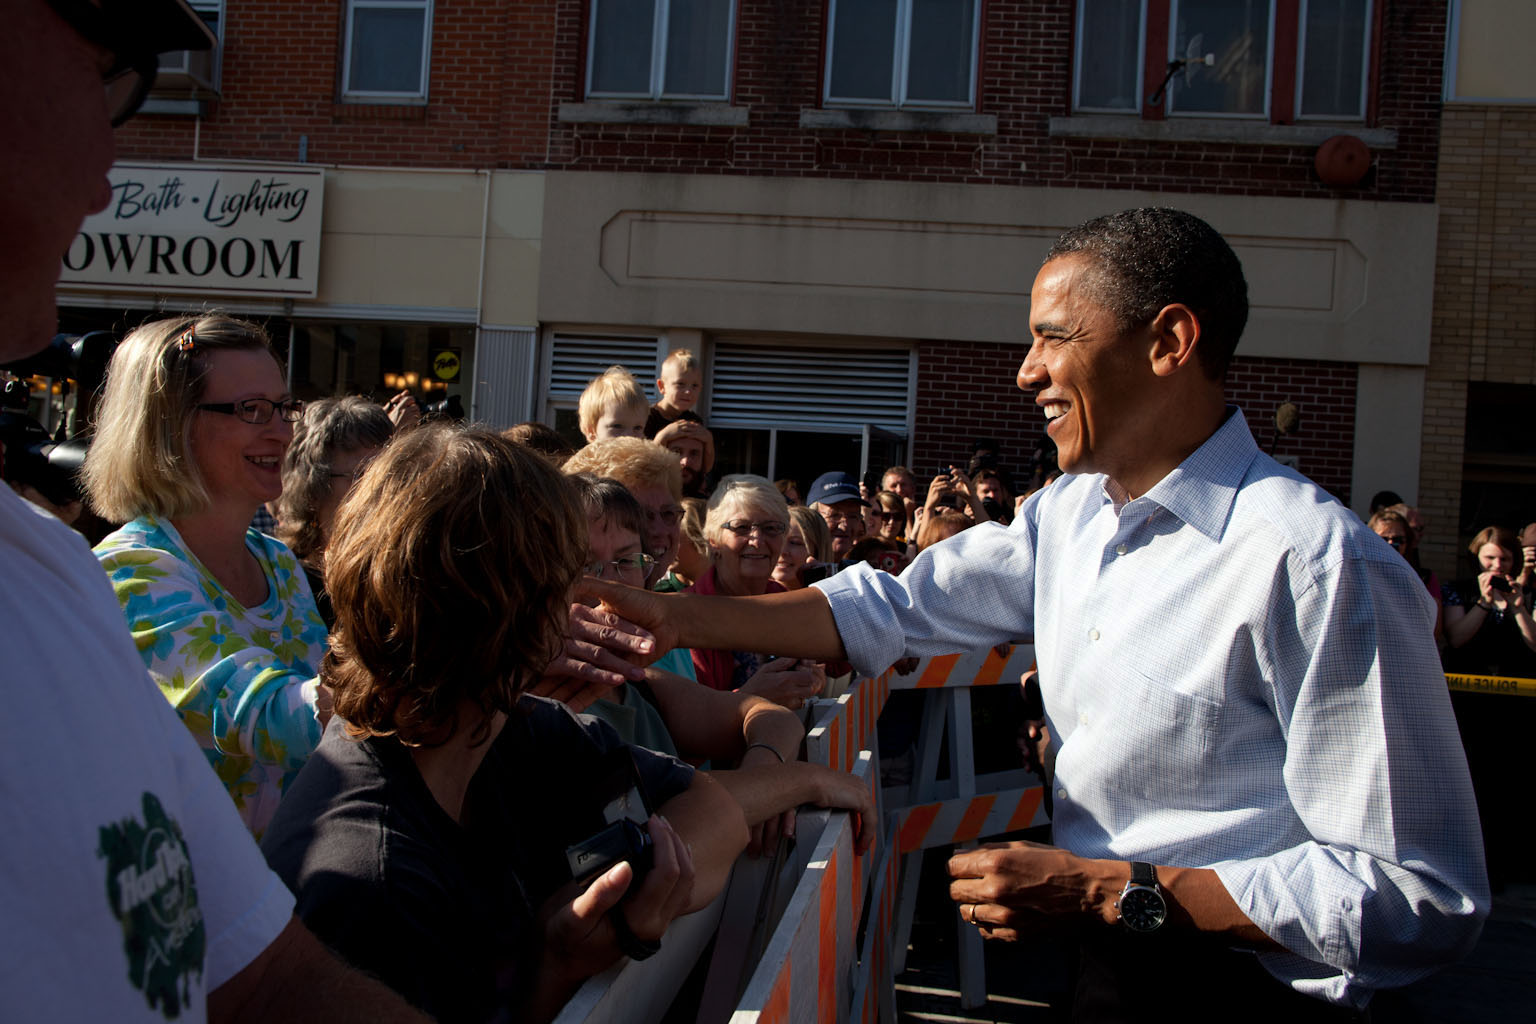 President Obama Greets People in the Street in Decorah, Iowa